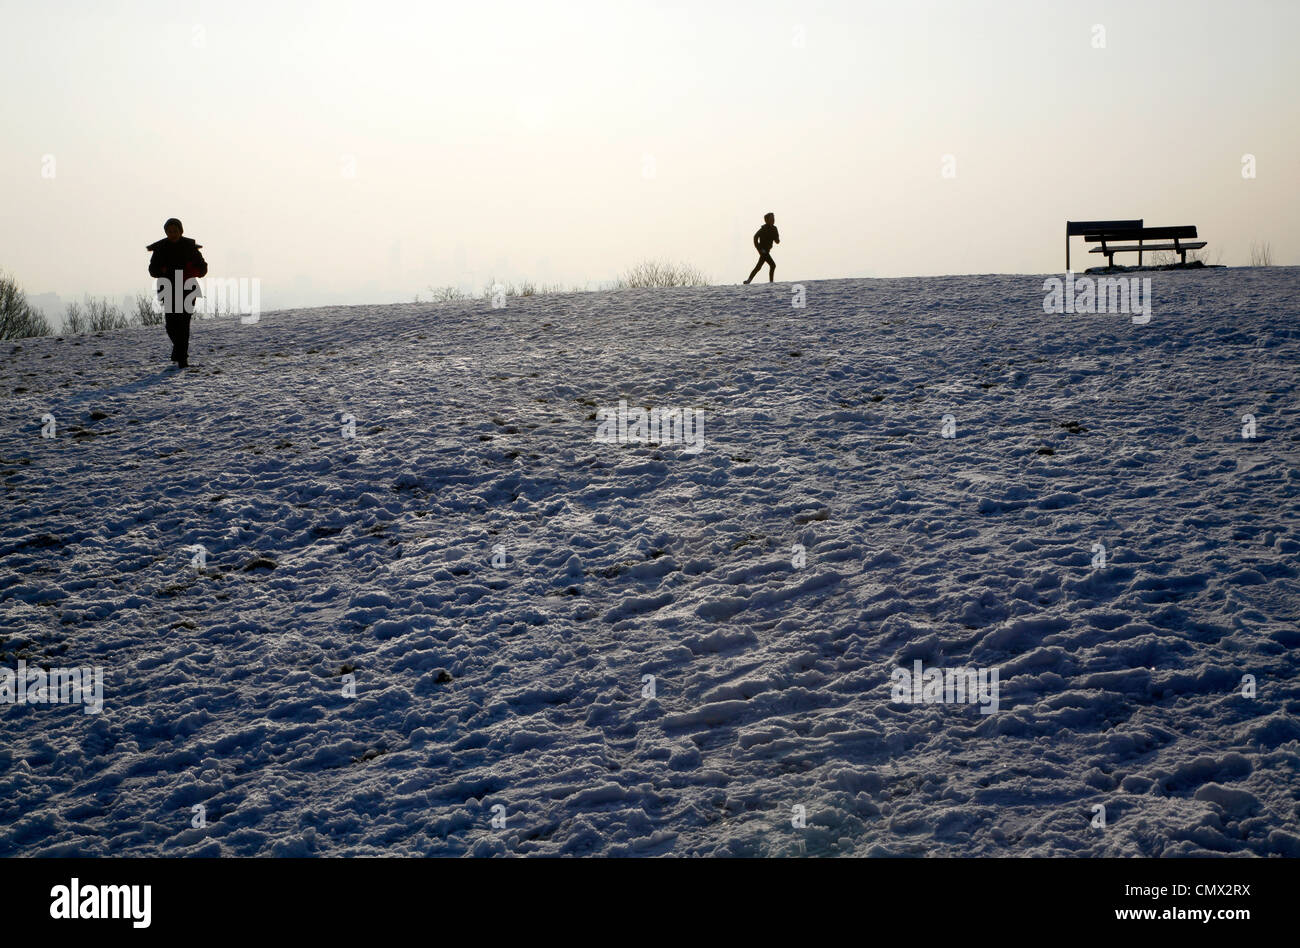 Walker and jogger taking in the view from the top of a snowy Parliament Hill, Hampstead Heath, London, UK - Stock Image